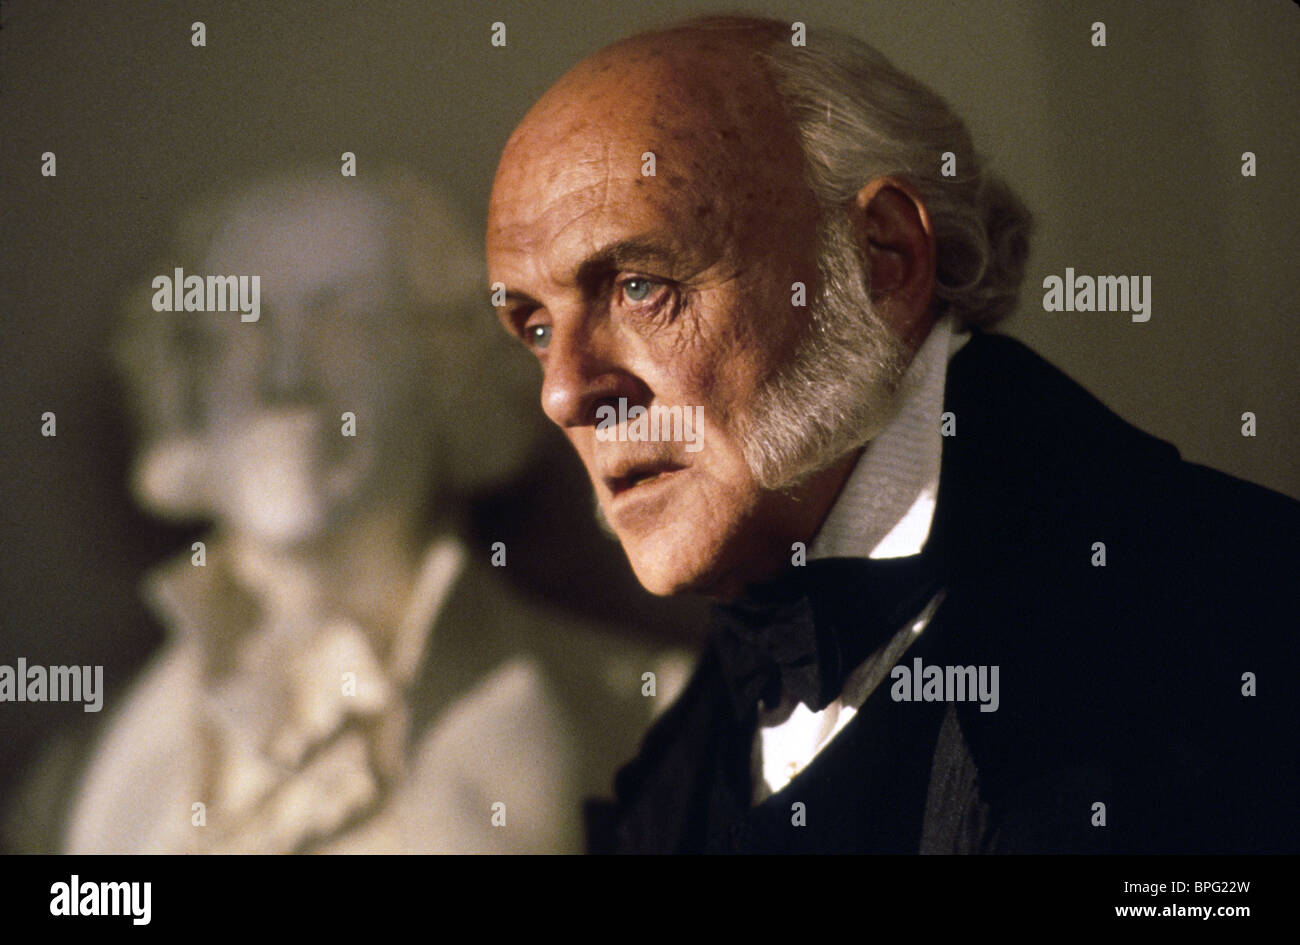 ANTHONY HOPKINS AMISTAD (1997) Stockbild